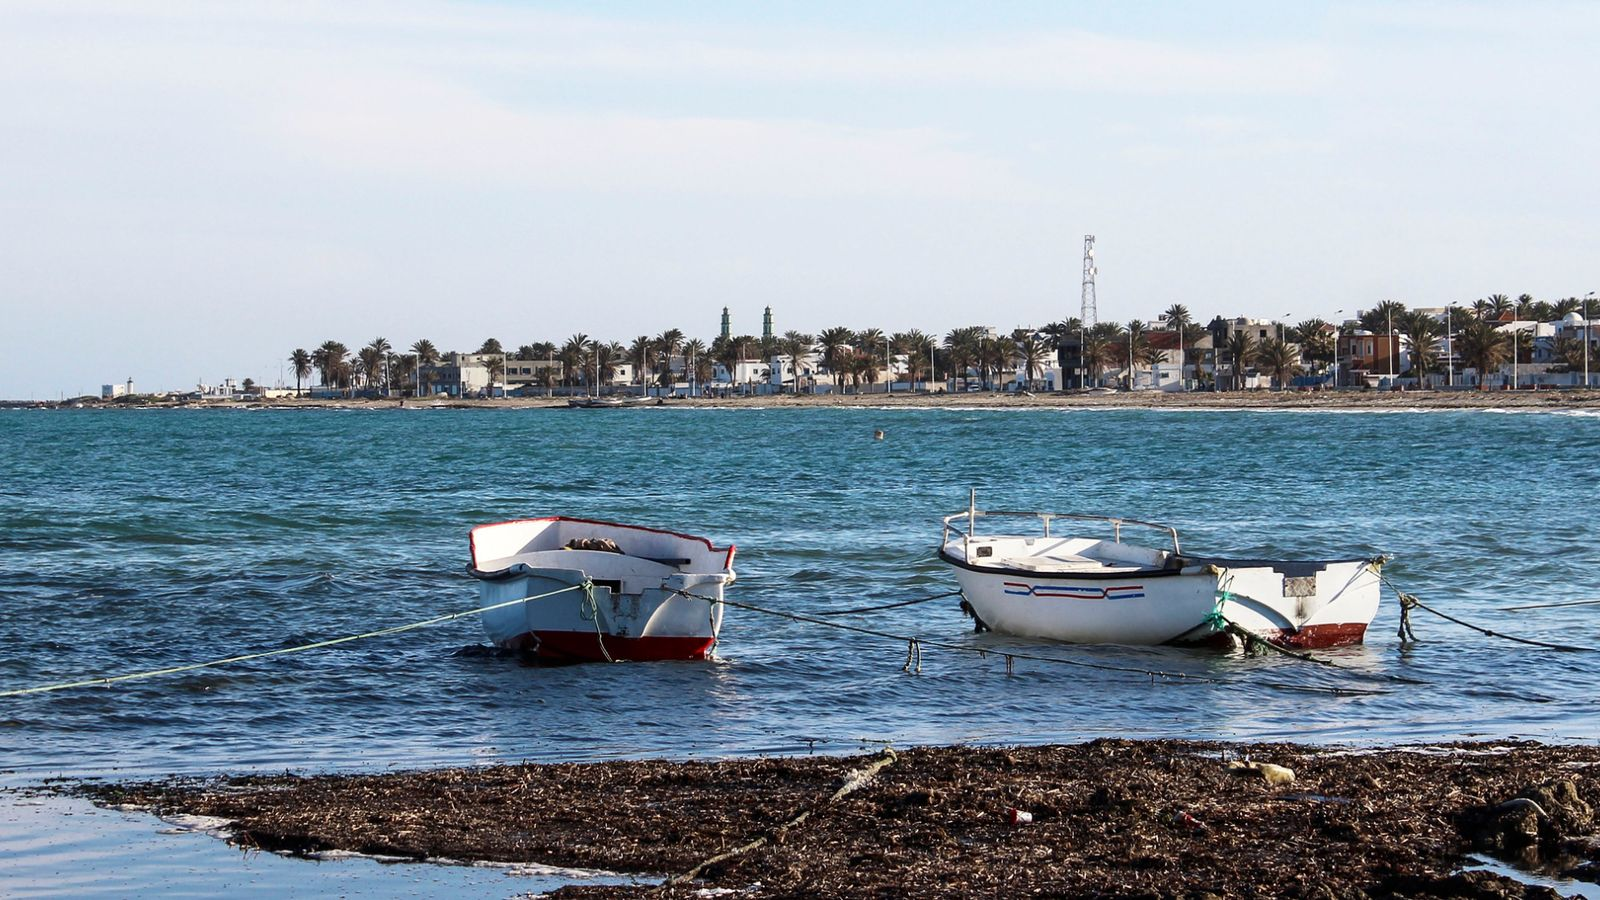 82 people missing after boat sinks off Tunisian coast